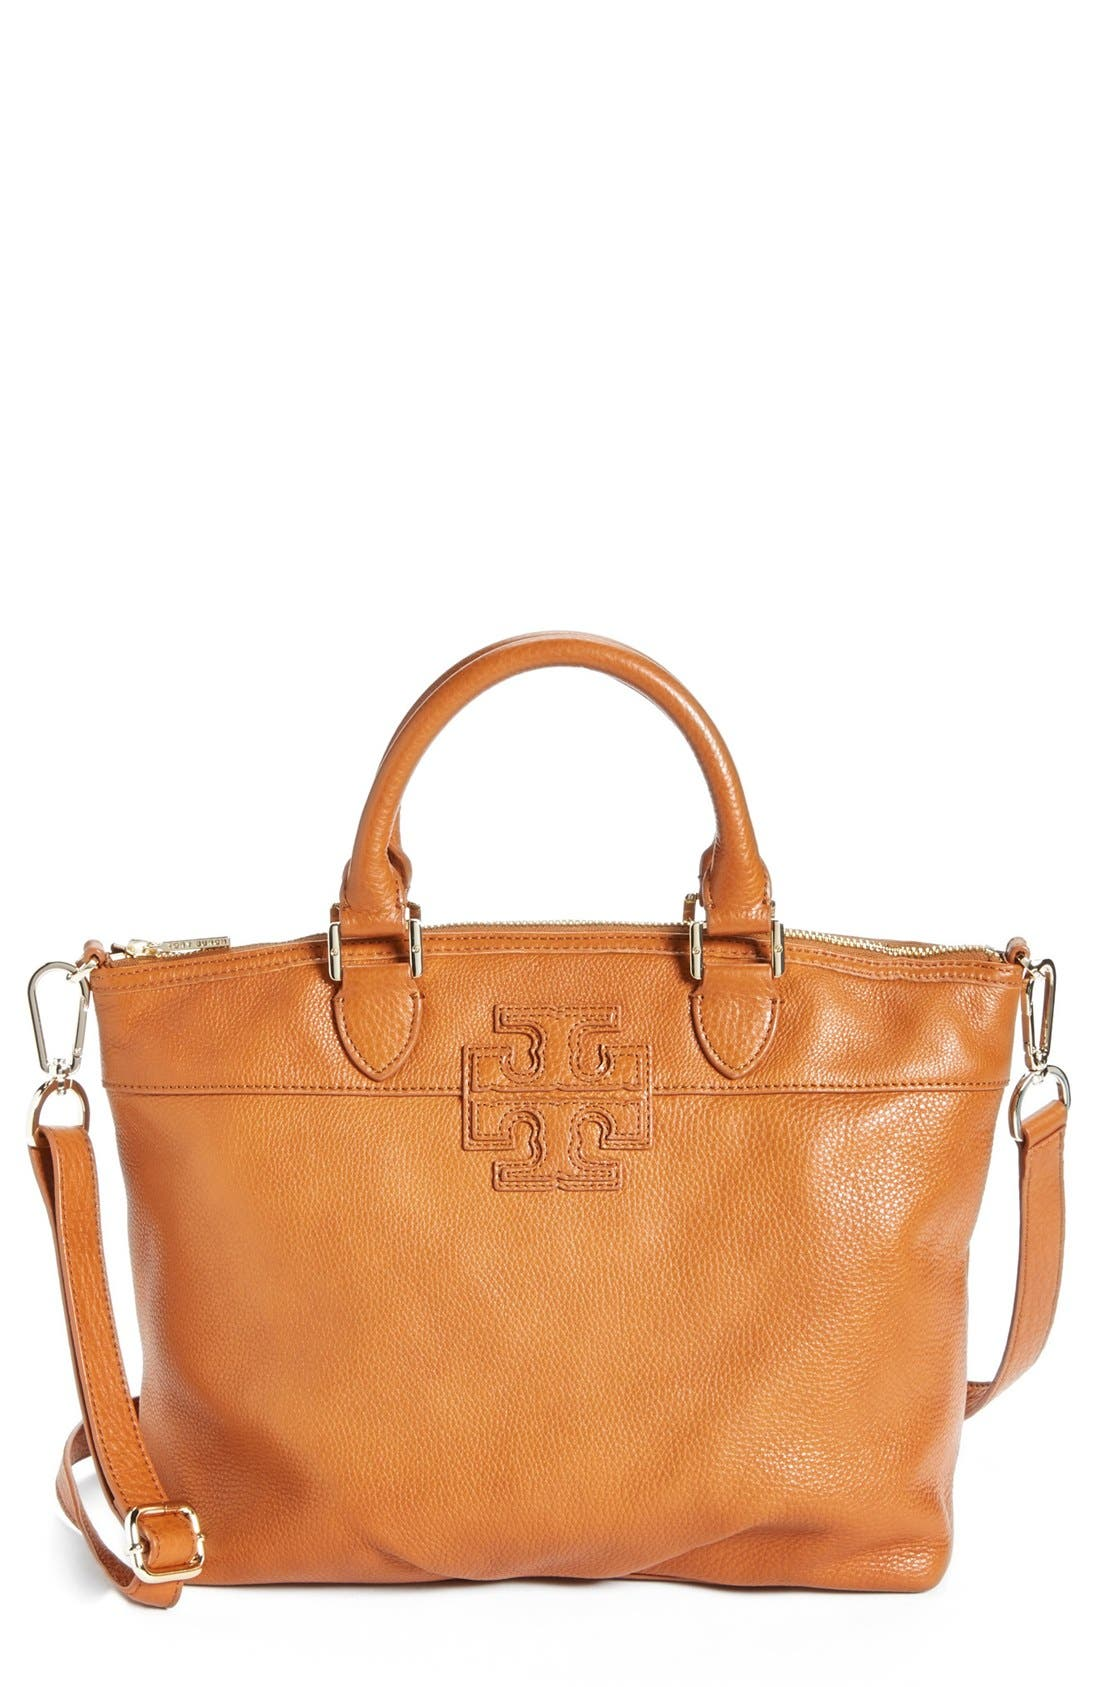 Alternate Image 1 Selected - Tory Burch 'Small Stacked T' Satchel